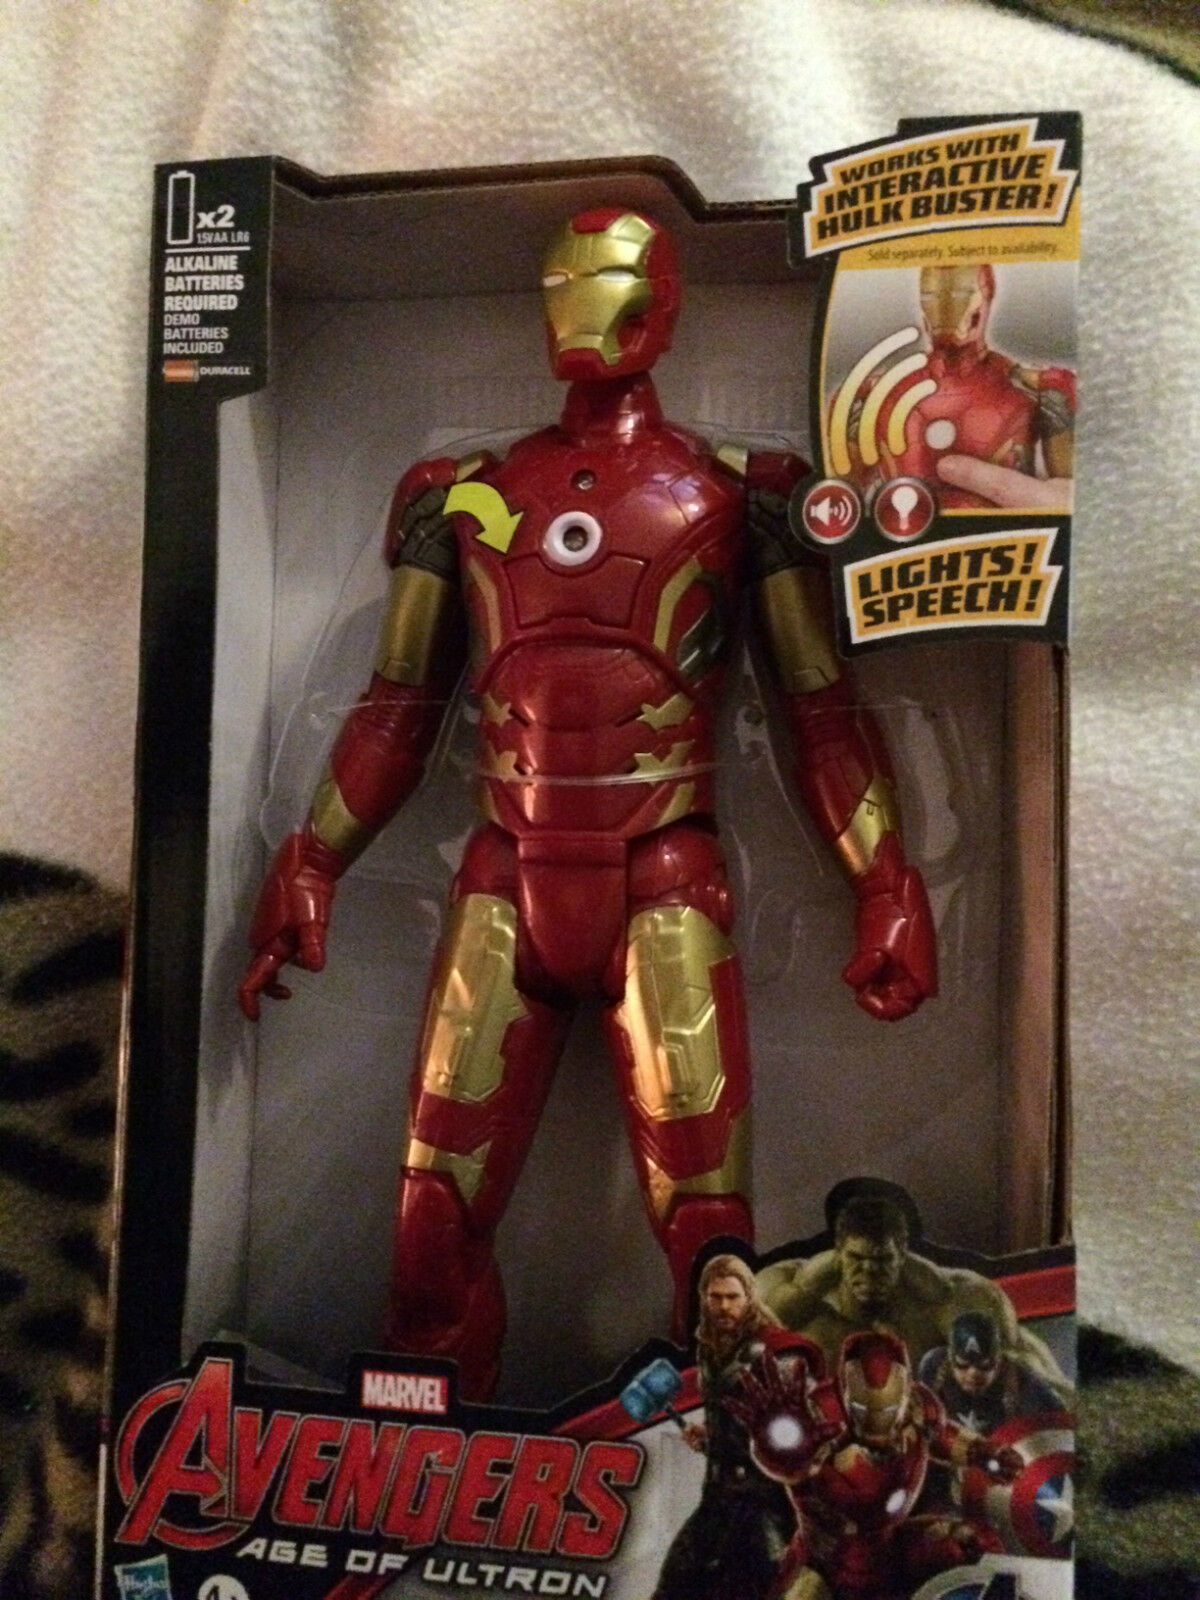 Marvel Avengers Age Of Ultron  Iron man    figure with sounds 2803ac